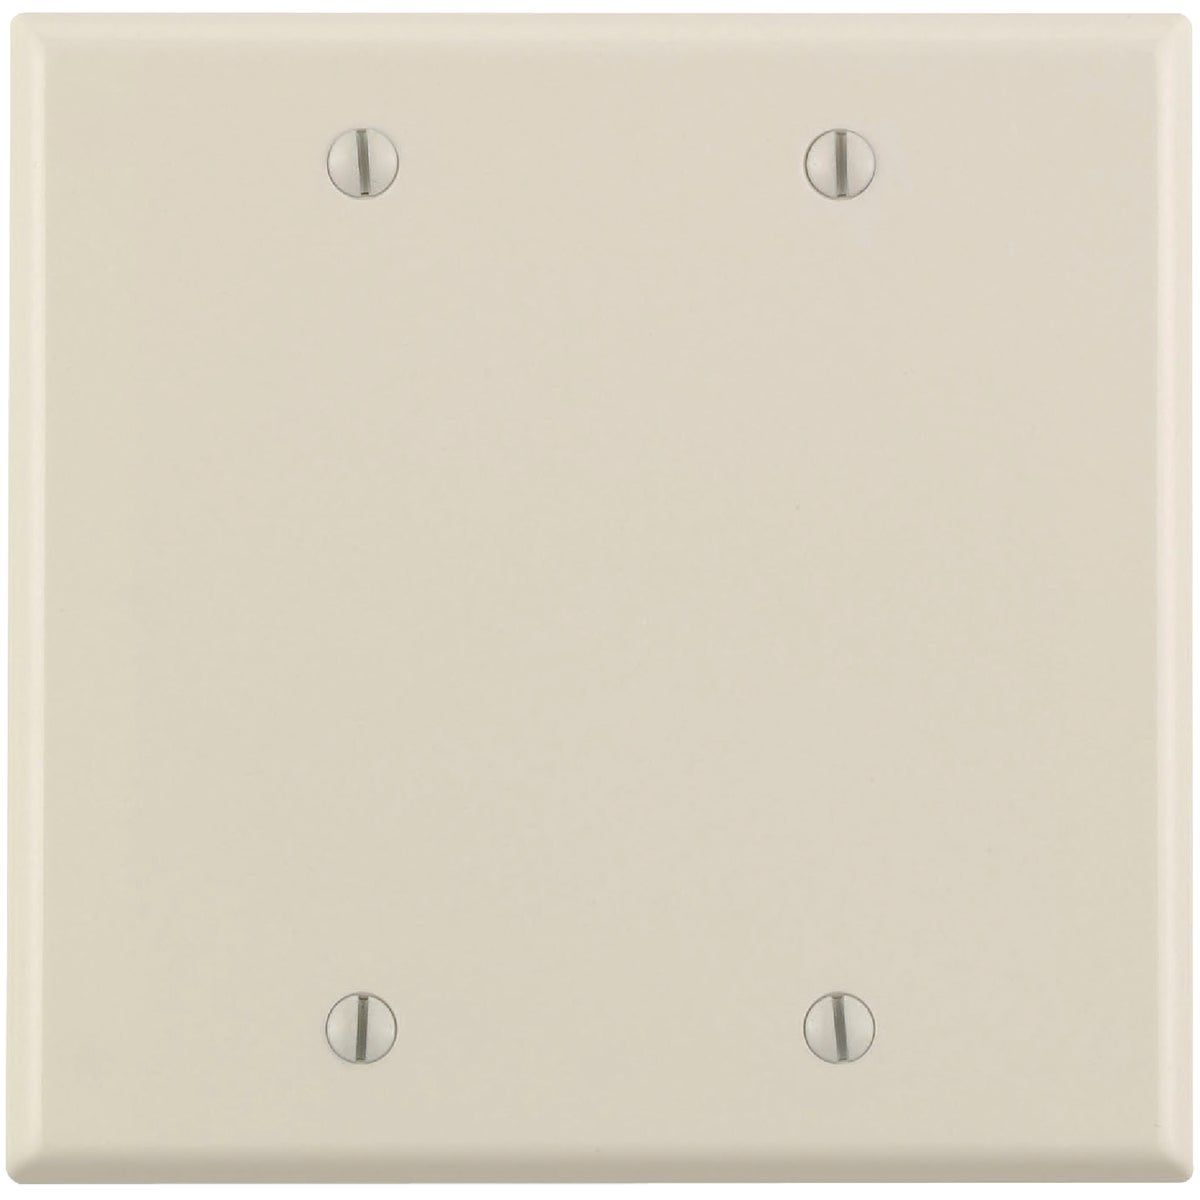 LT ALM BLANK WALLPLATE - 000-78025-000 by Leviton Mfg Co